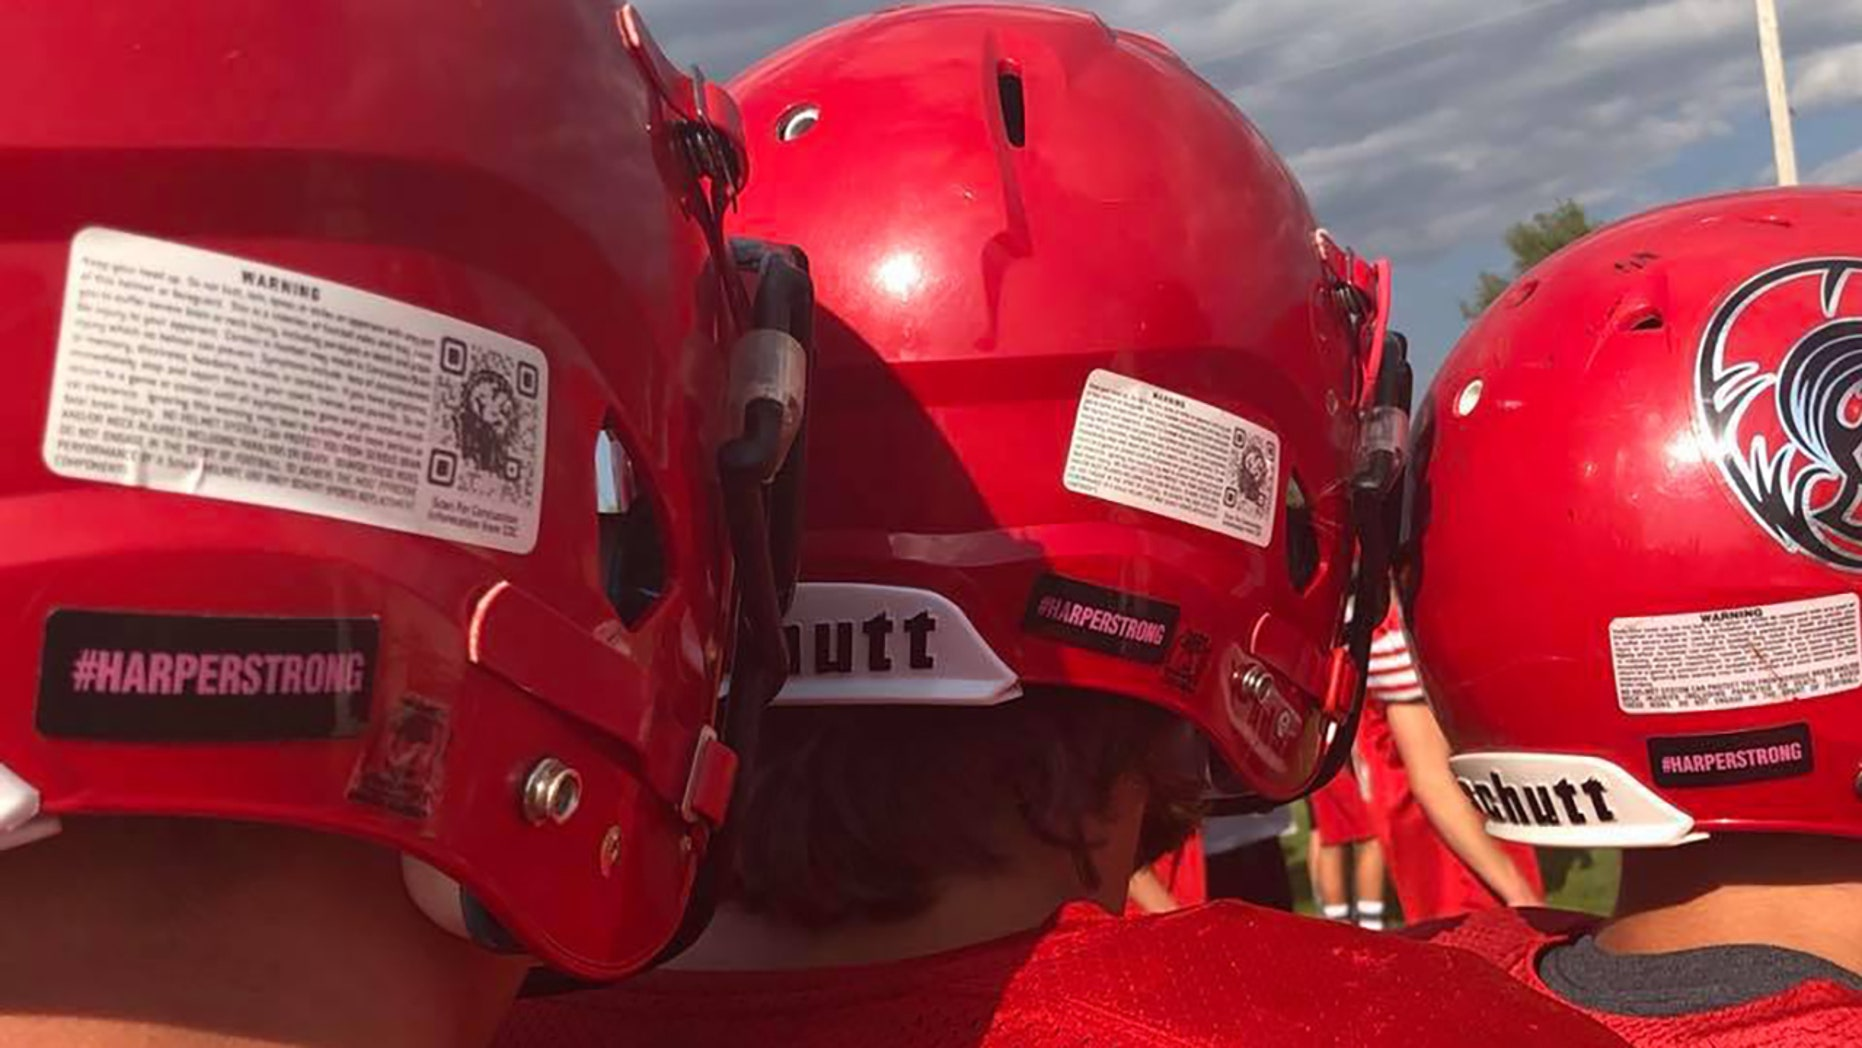 The #HarperStrong movement supported the daughter of Lake City High School coach Kyle Smith.